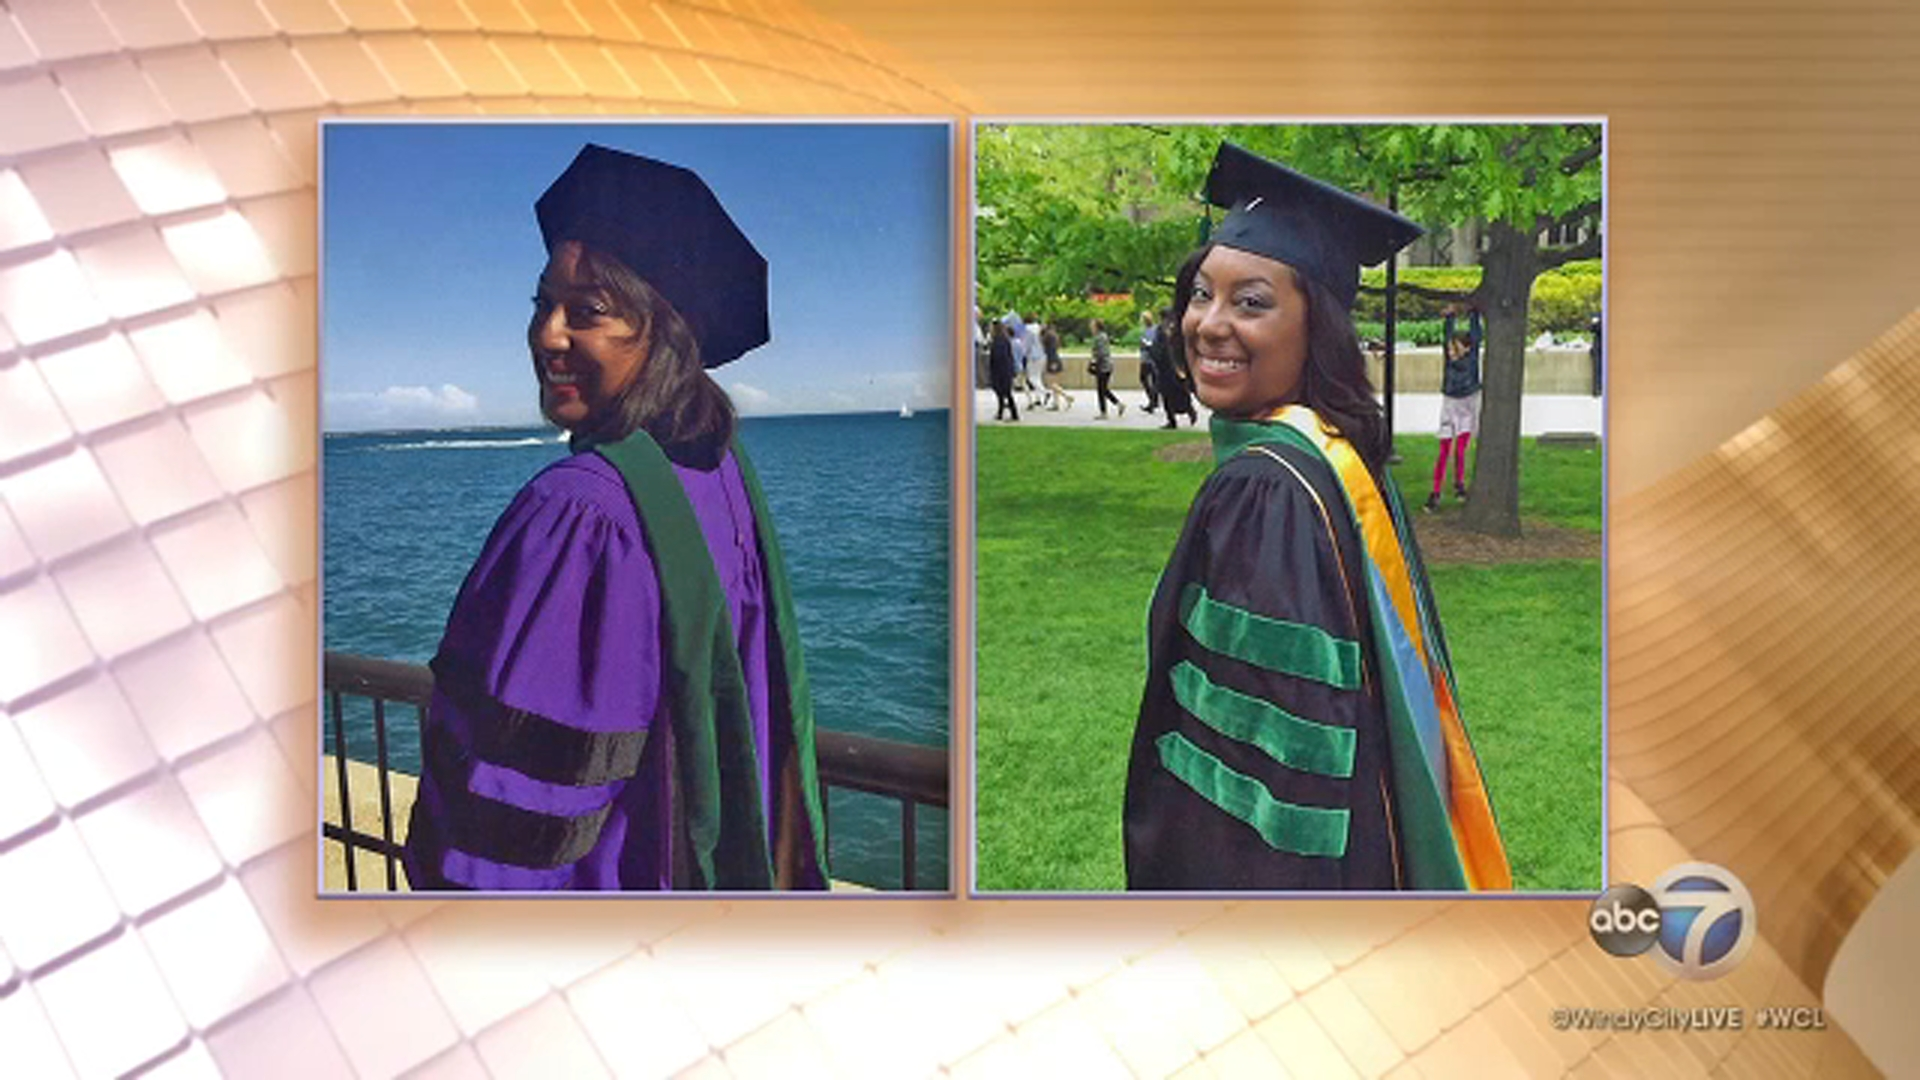 Twin doctors Brittani and Brandi Jackson have launched a website to support and inspire those traditionally underrepresented in the health care field.